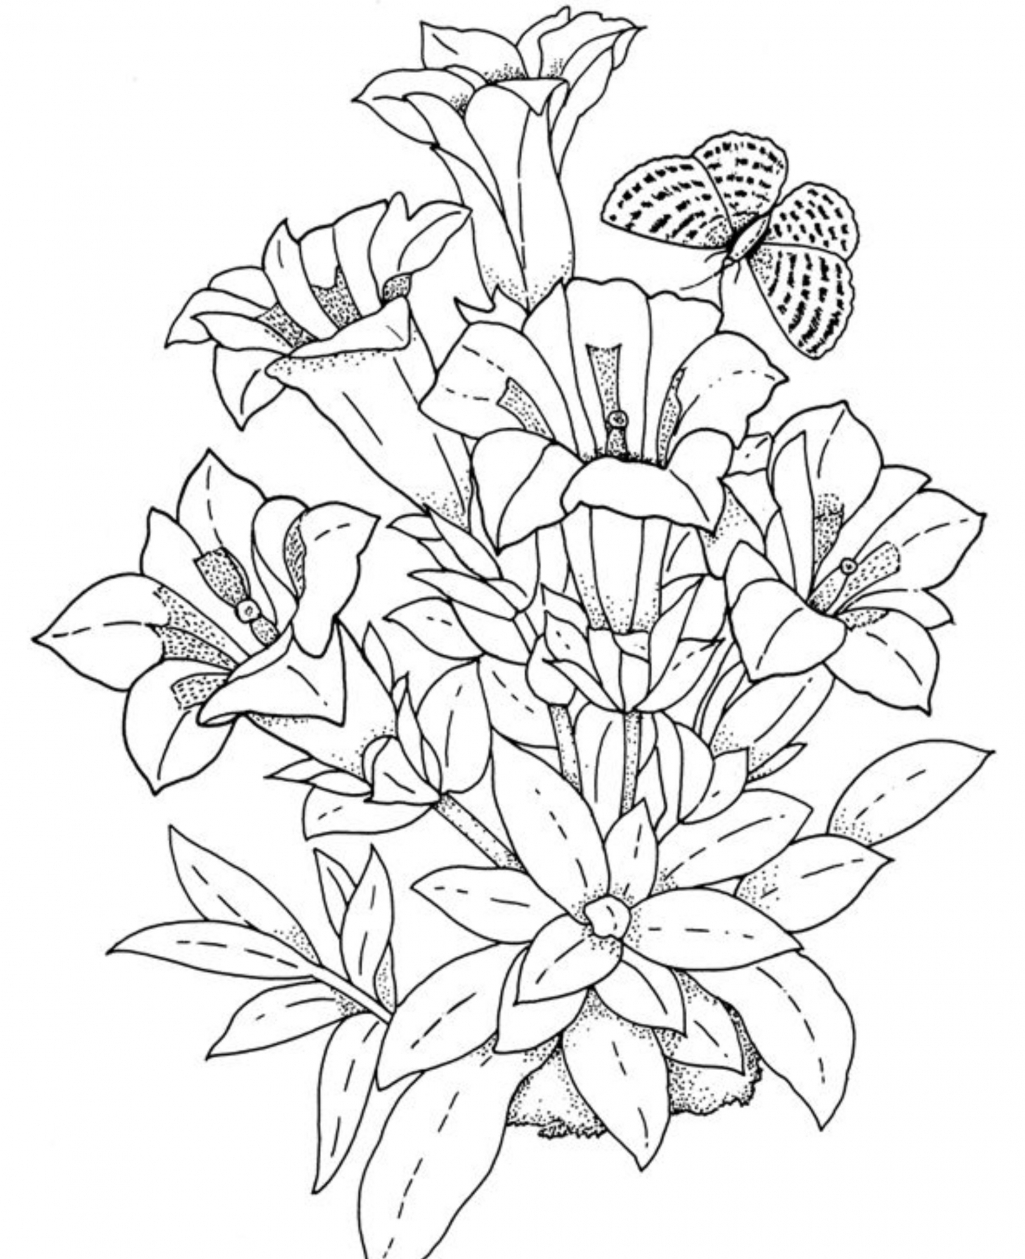 flower coloring sheet detailed flower coloring pages to download and print for free flower sheet coloring